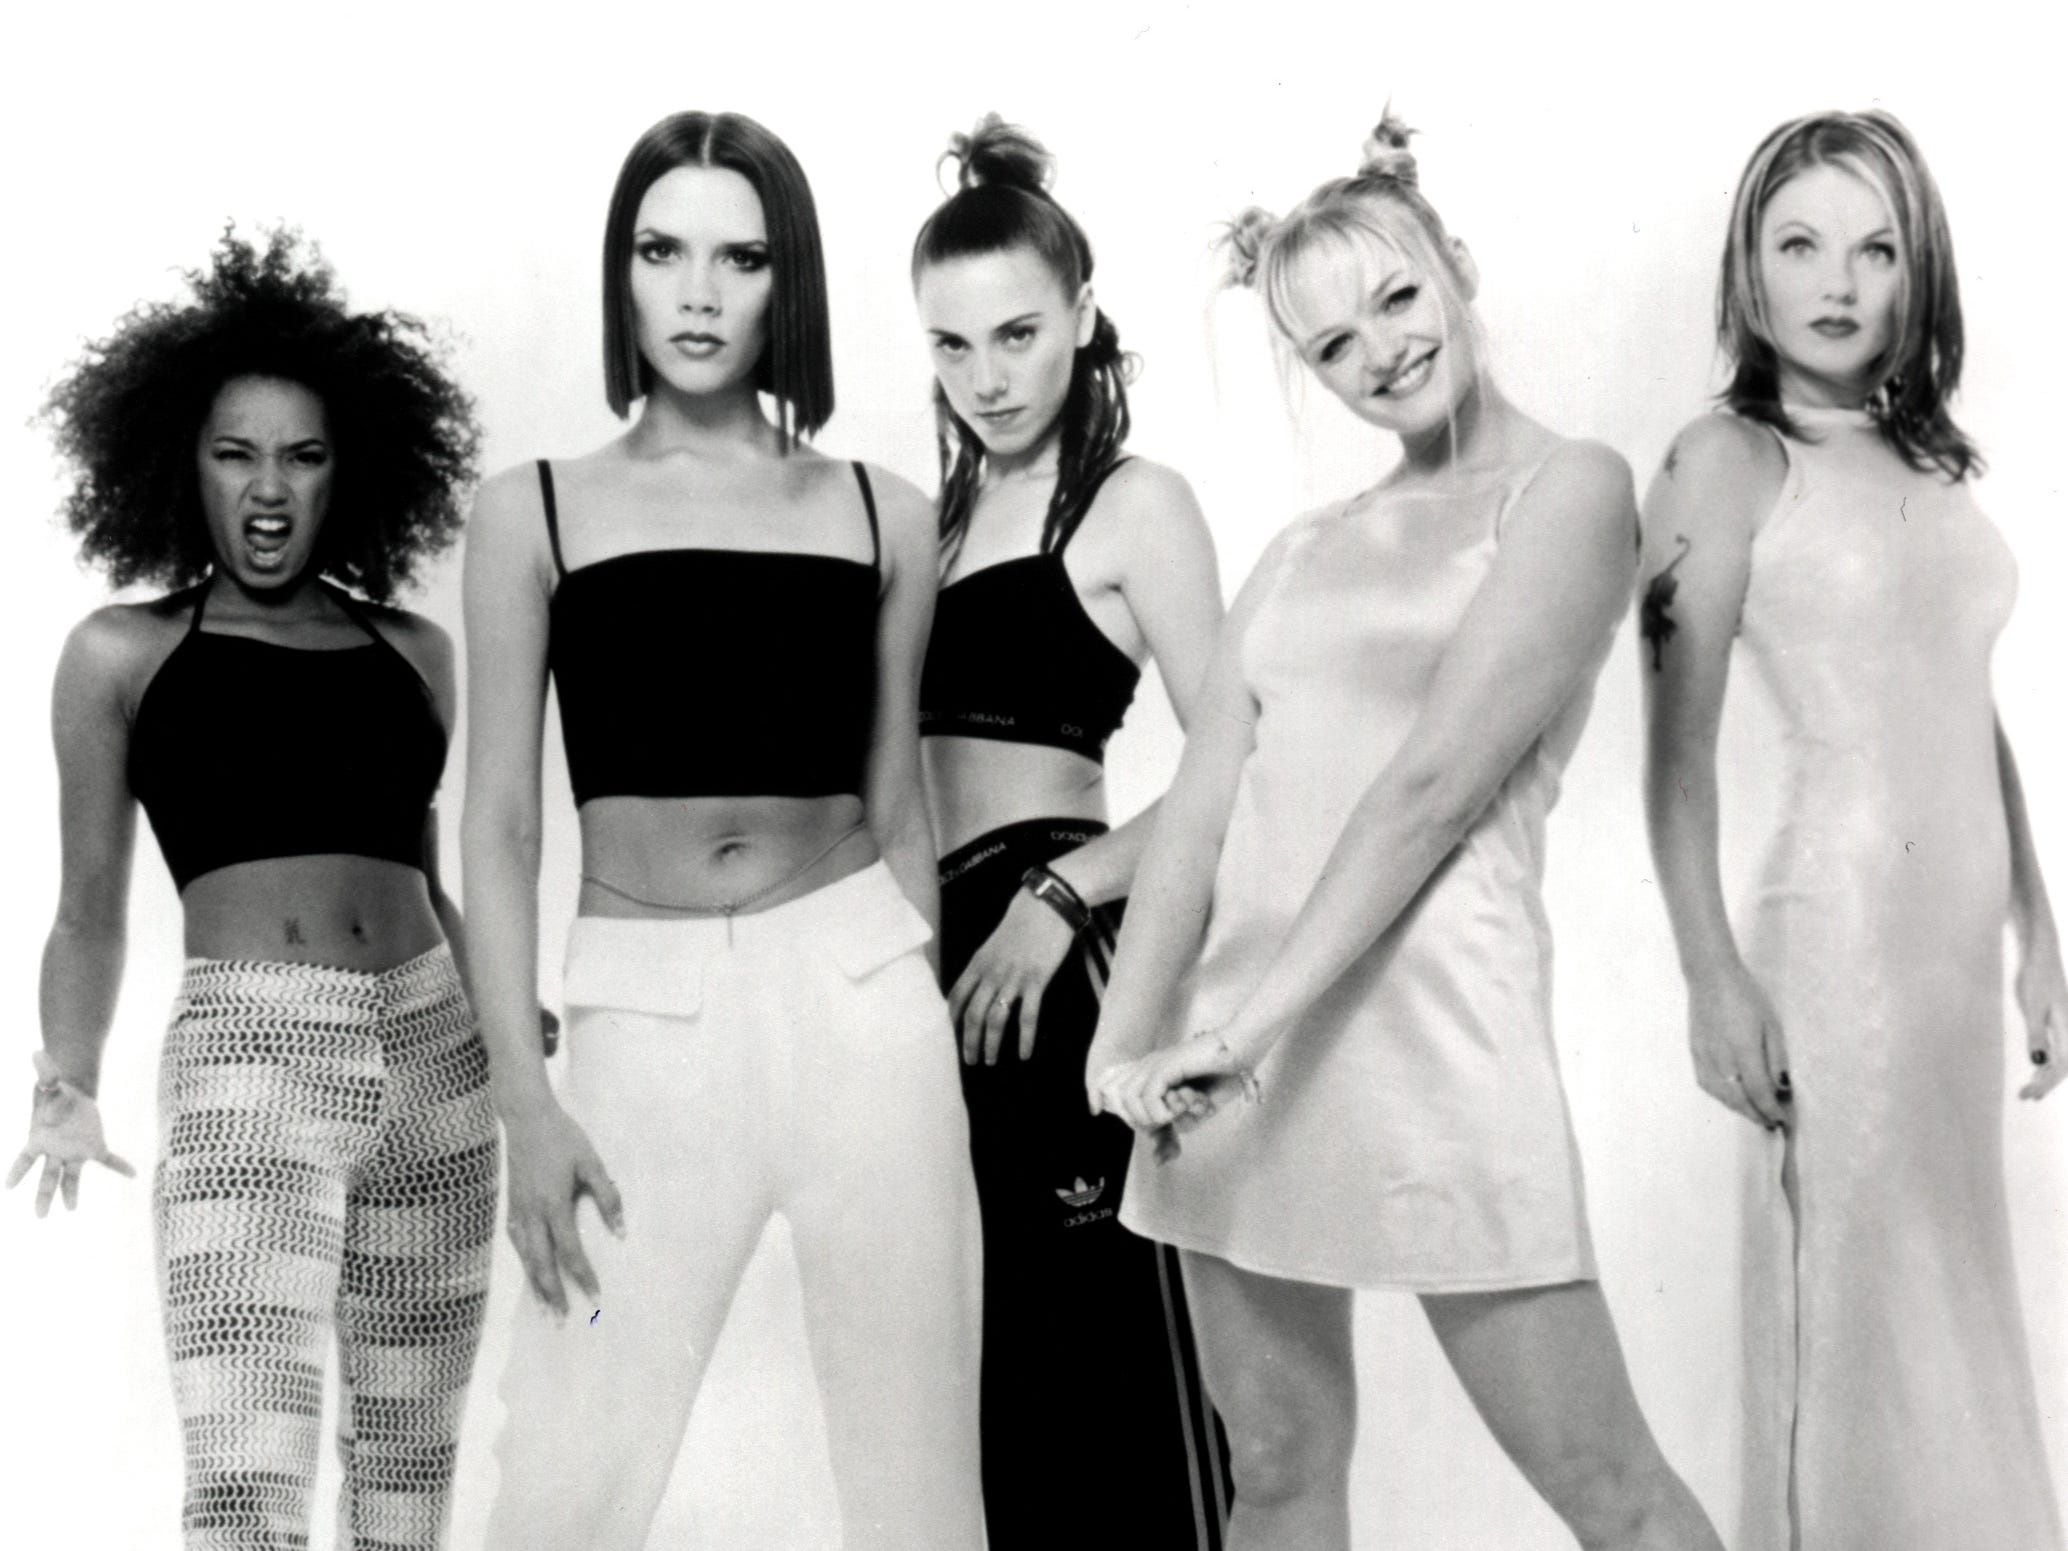 The Spice Girls debuted over 20 years ago, yet their careers are still up and running. The group sold over 85 million records worldwide making them the best selling girl group of all time. See what what each spice has been up to since their '90s popstar days.